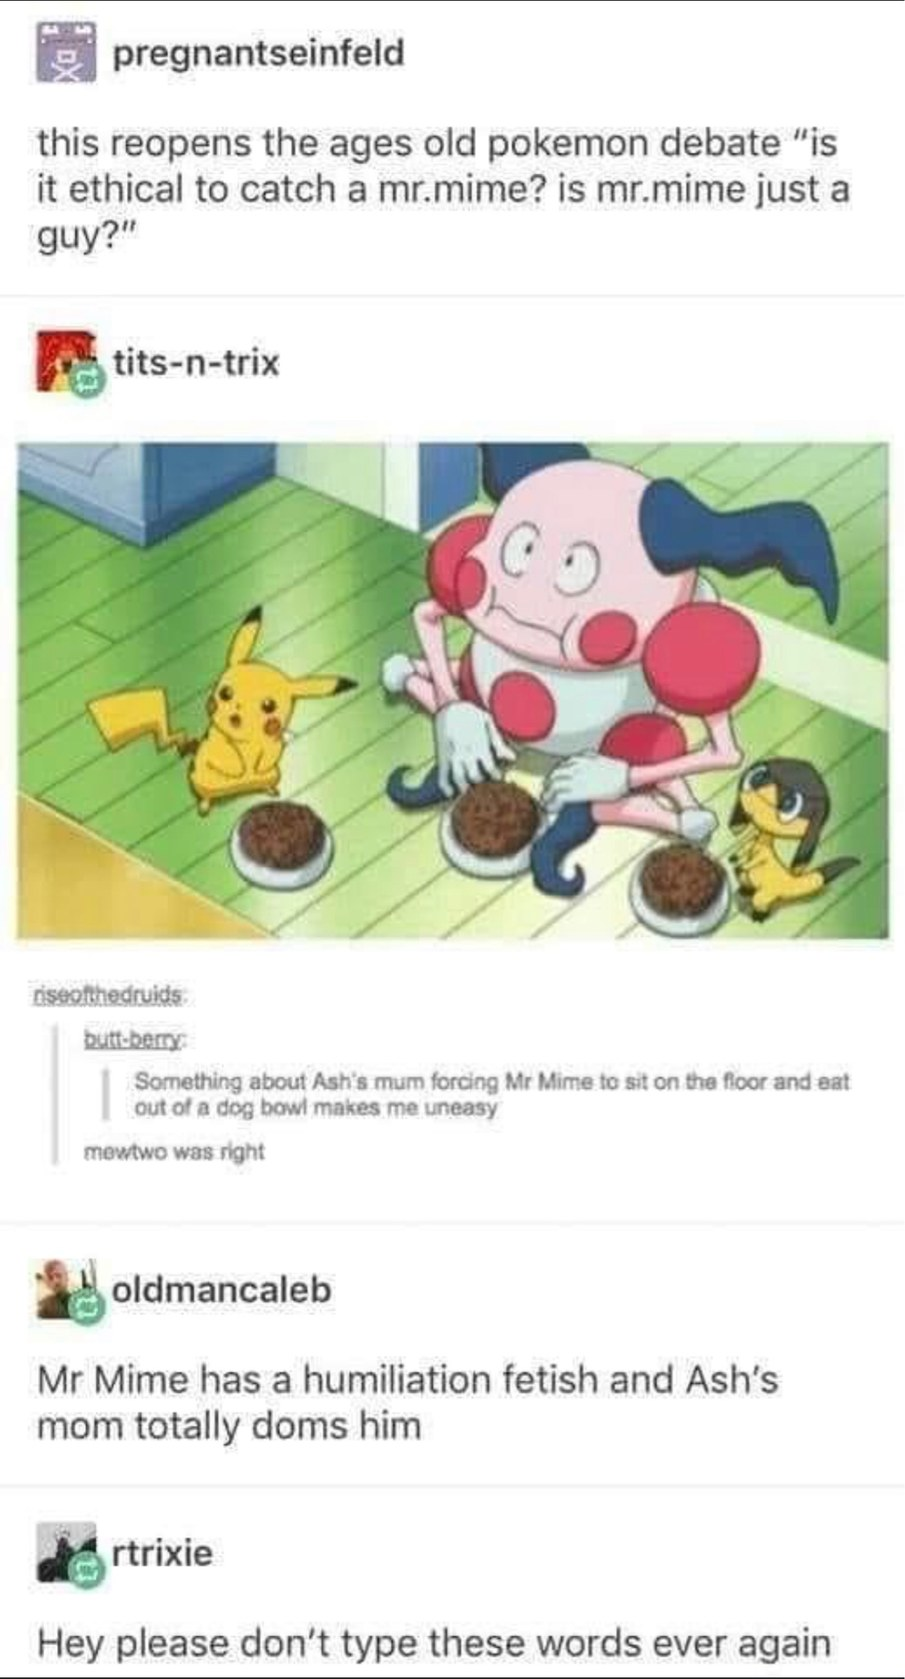 gonna dress up as mr mime and find my self a milf - meme